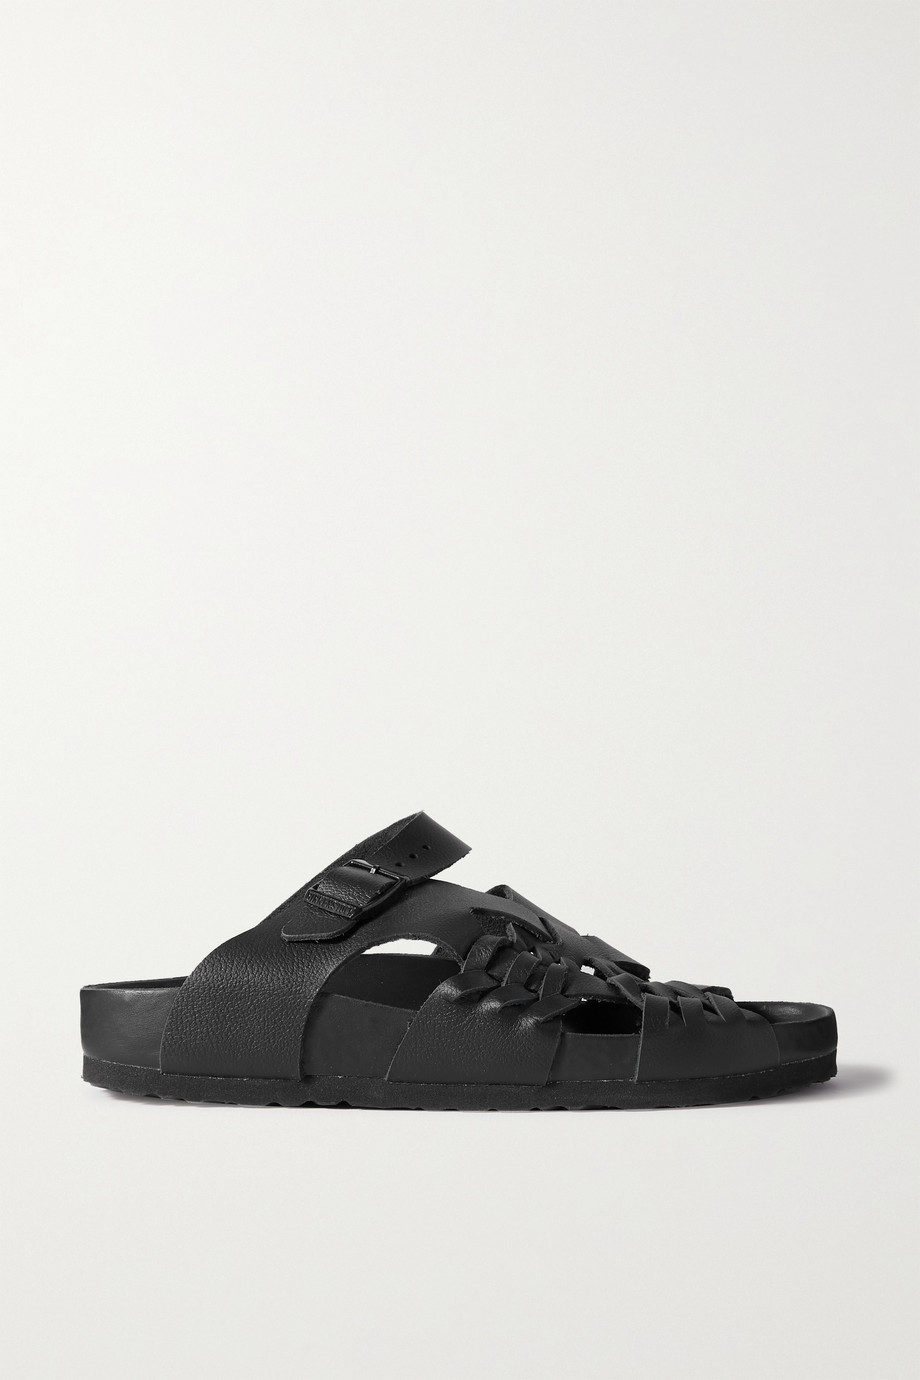 BIRKENSTOCK 1774 + Central Saint Martins Tallahassee woven leather sandals